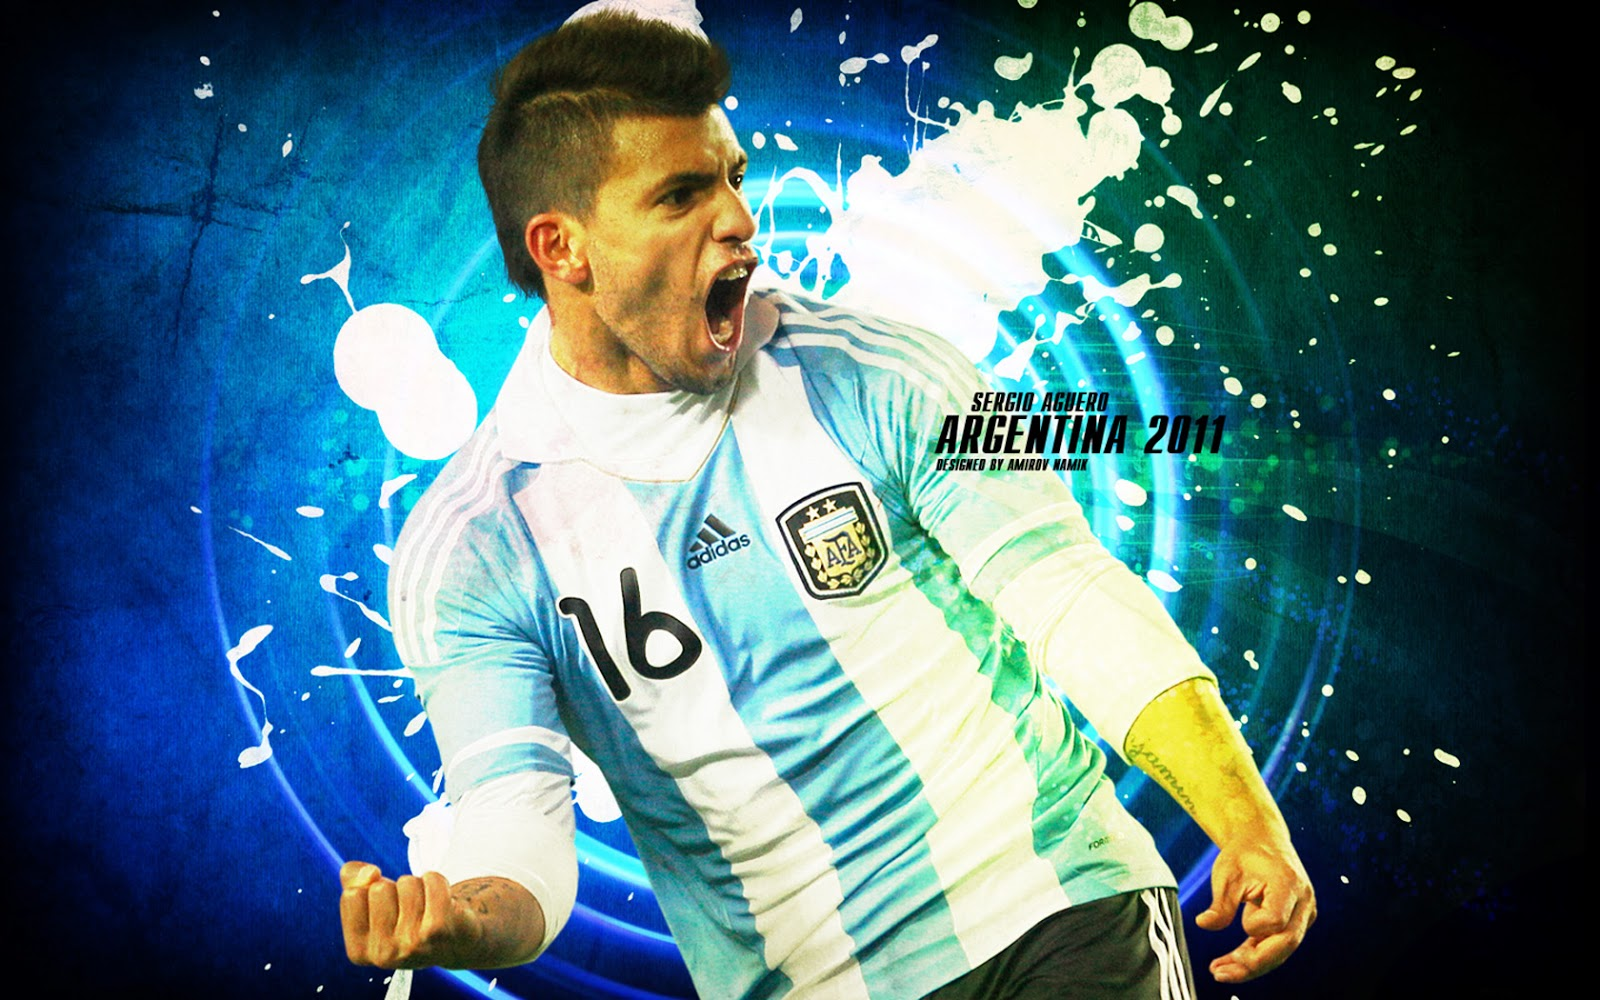 Sergio Aguero Wallpapers: Famous Sports Personalities: Sergio Aguero Hd Wallpapers 2013